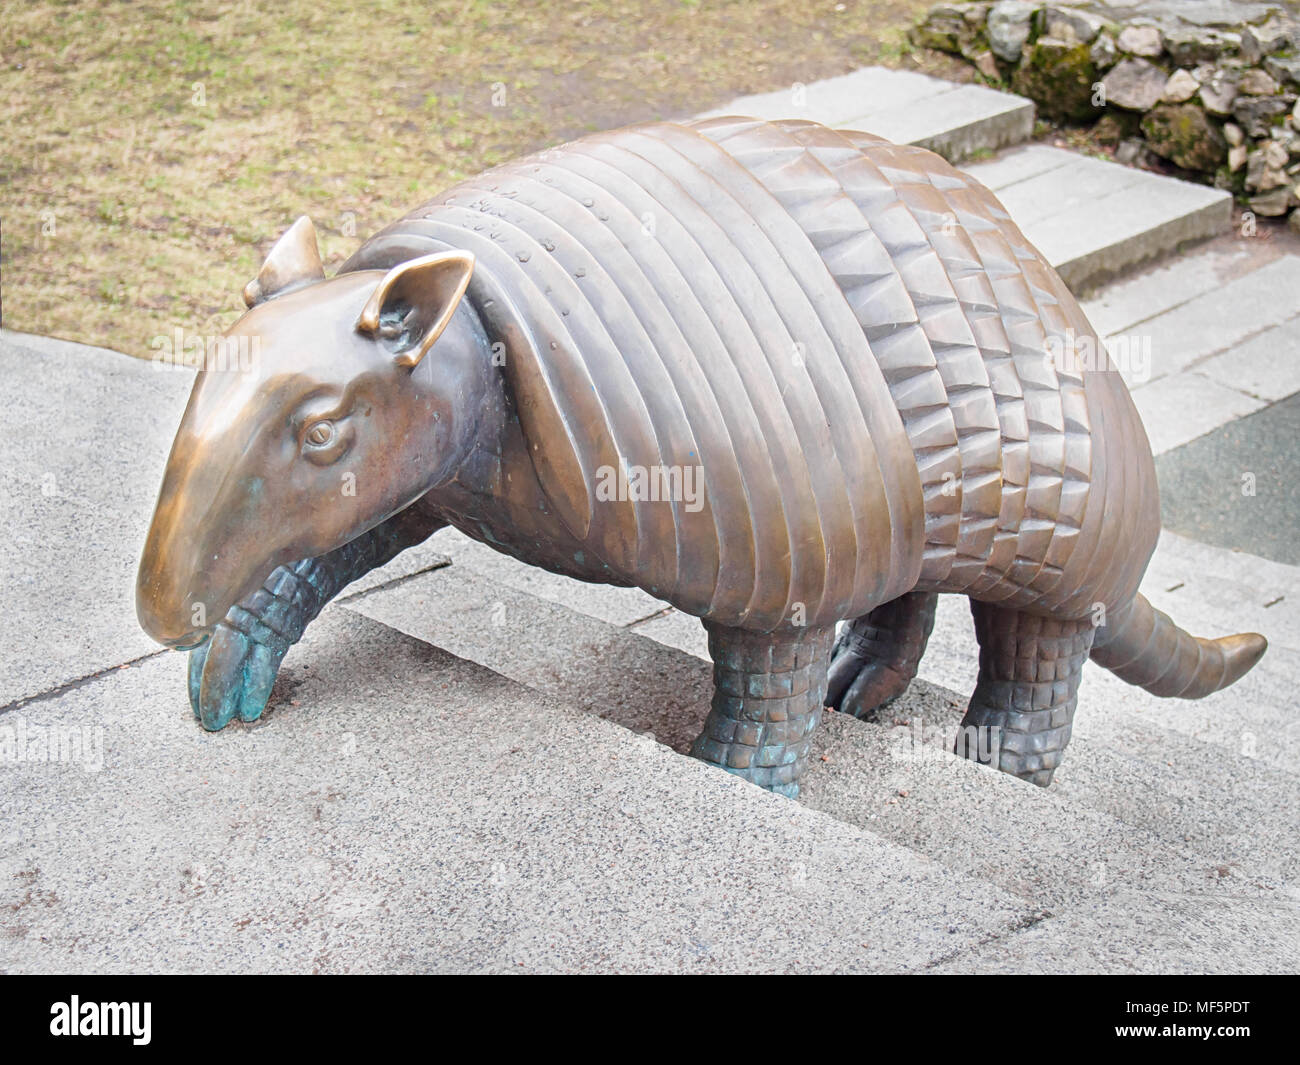 Riga Latvia April 17 2018 Armadillo Statue By Liene Mackus At The Children S Playground Labyrinth Stock Photo Alamy